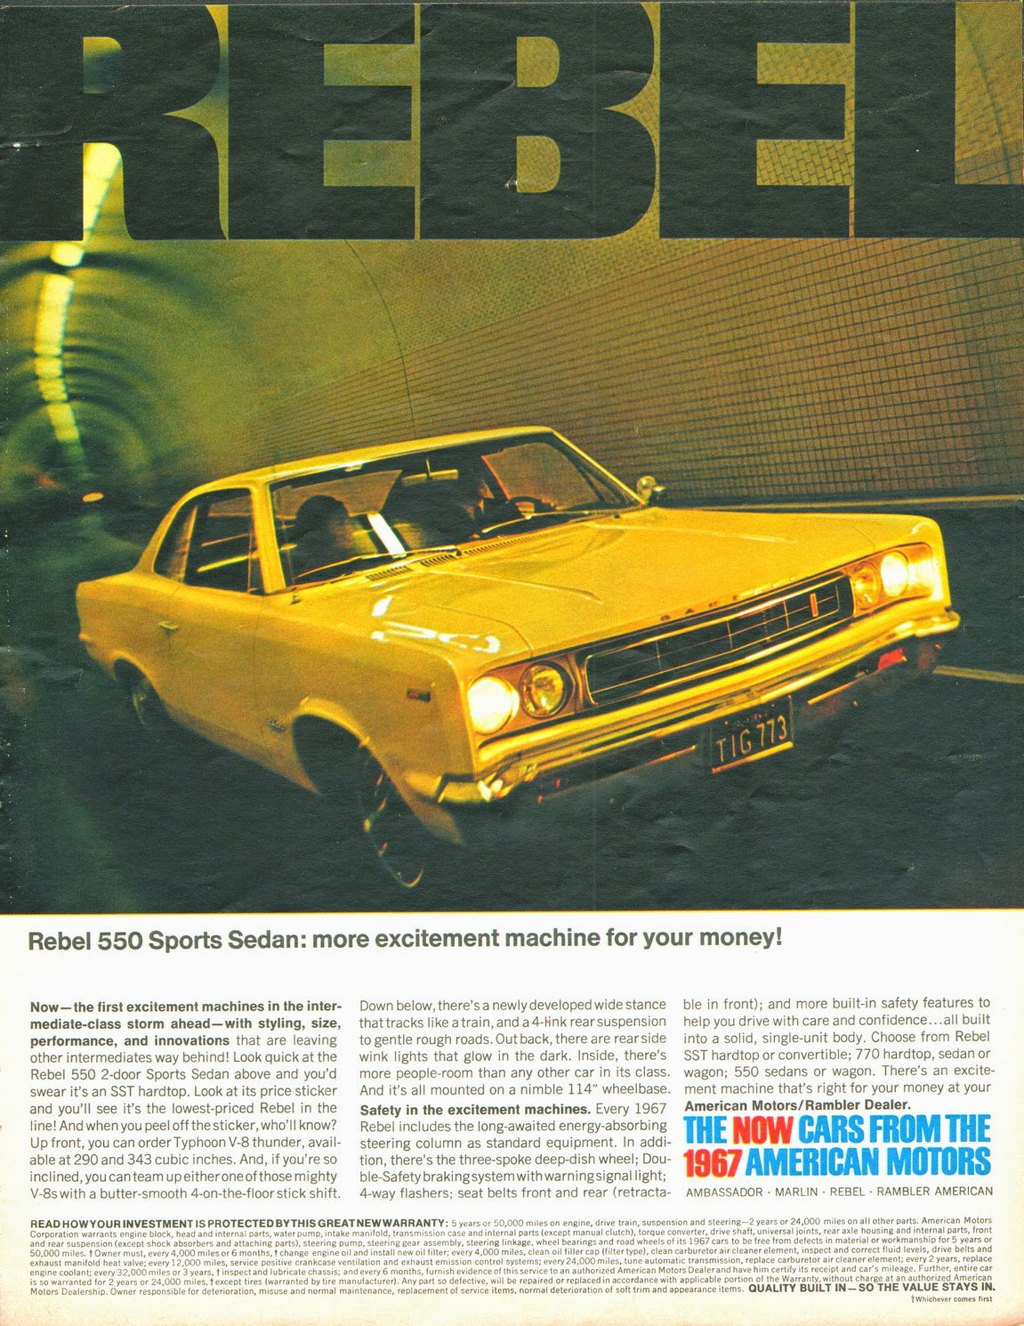 The AMC Rebel 550 Sports Sedan. More excitement machine for your money!